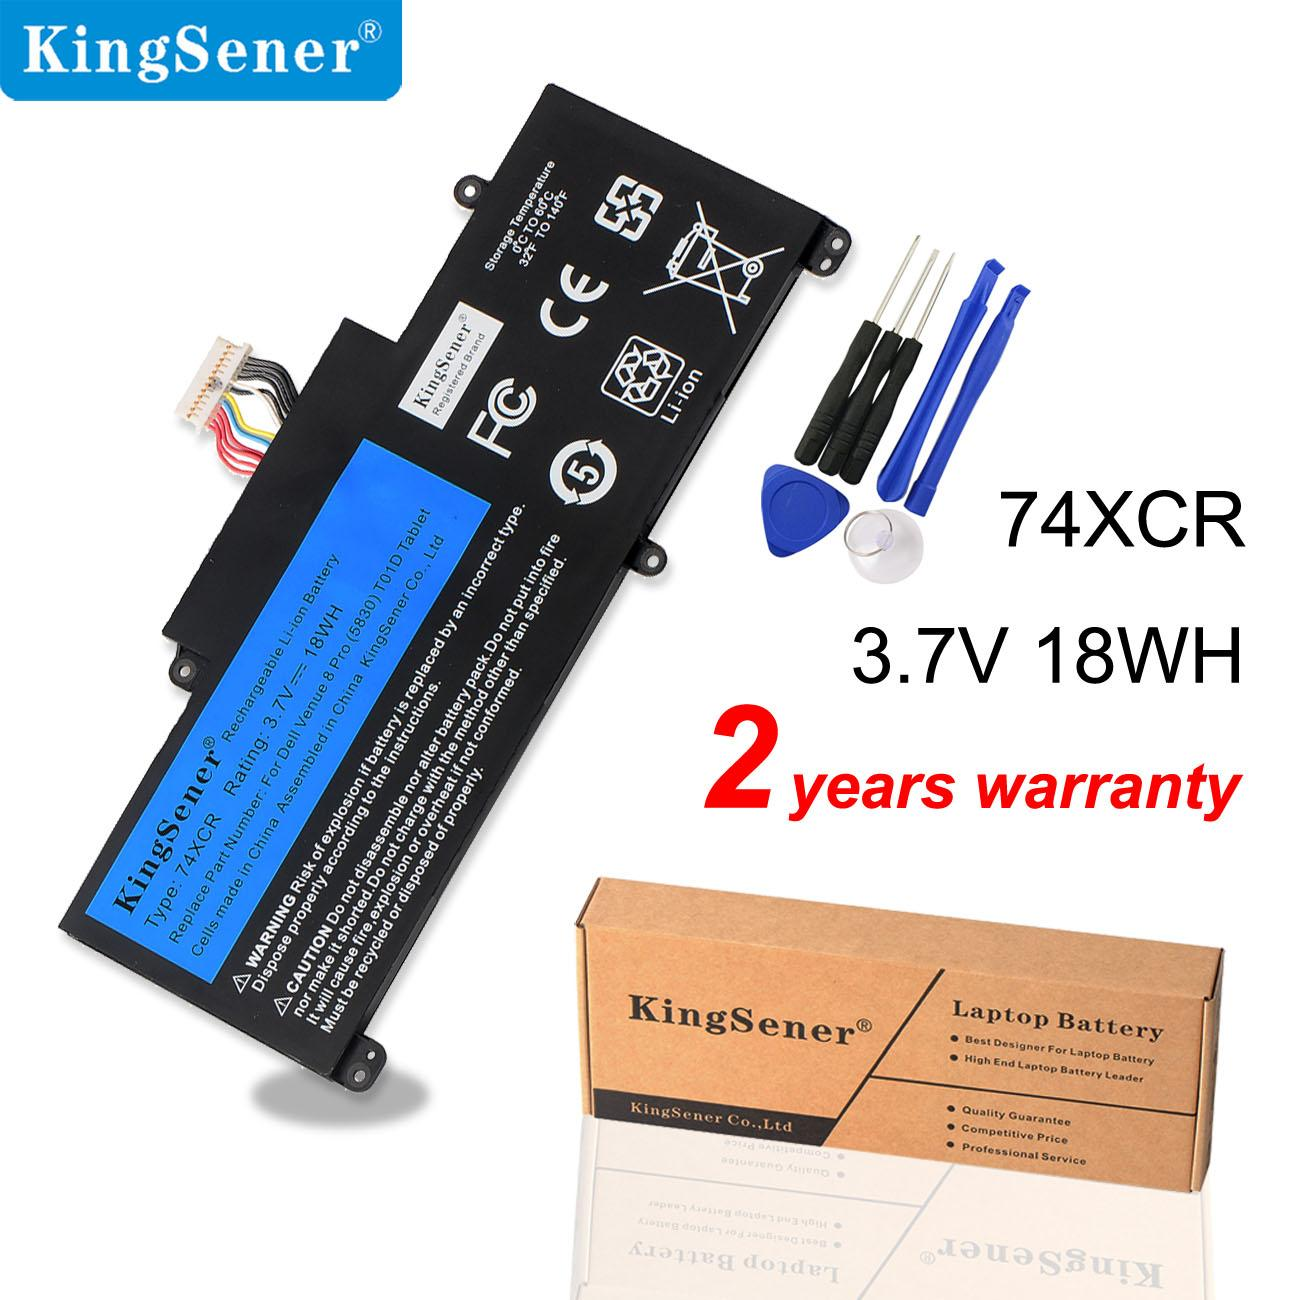 KingSener 74XCR 074XCR Laptop Battery For Dell Venue 8 Pro 5830 T01D VXGP6 X1M2Y Tablet Series 3.7V 18WH